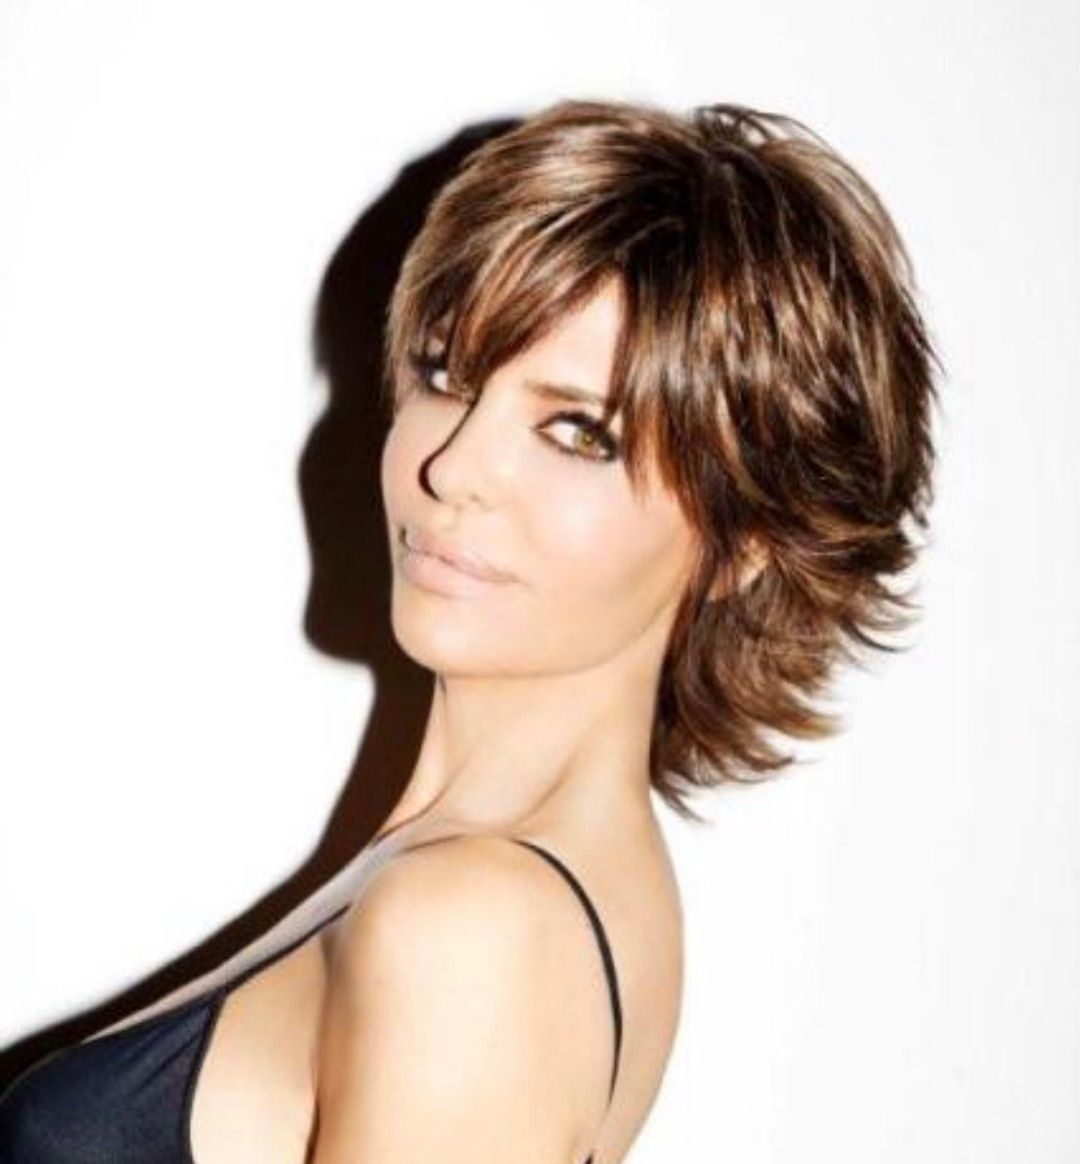 Instagram Lisa Rinna naked (47 photos), Pussy, Leaked, Boobs, butt 2006